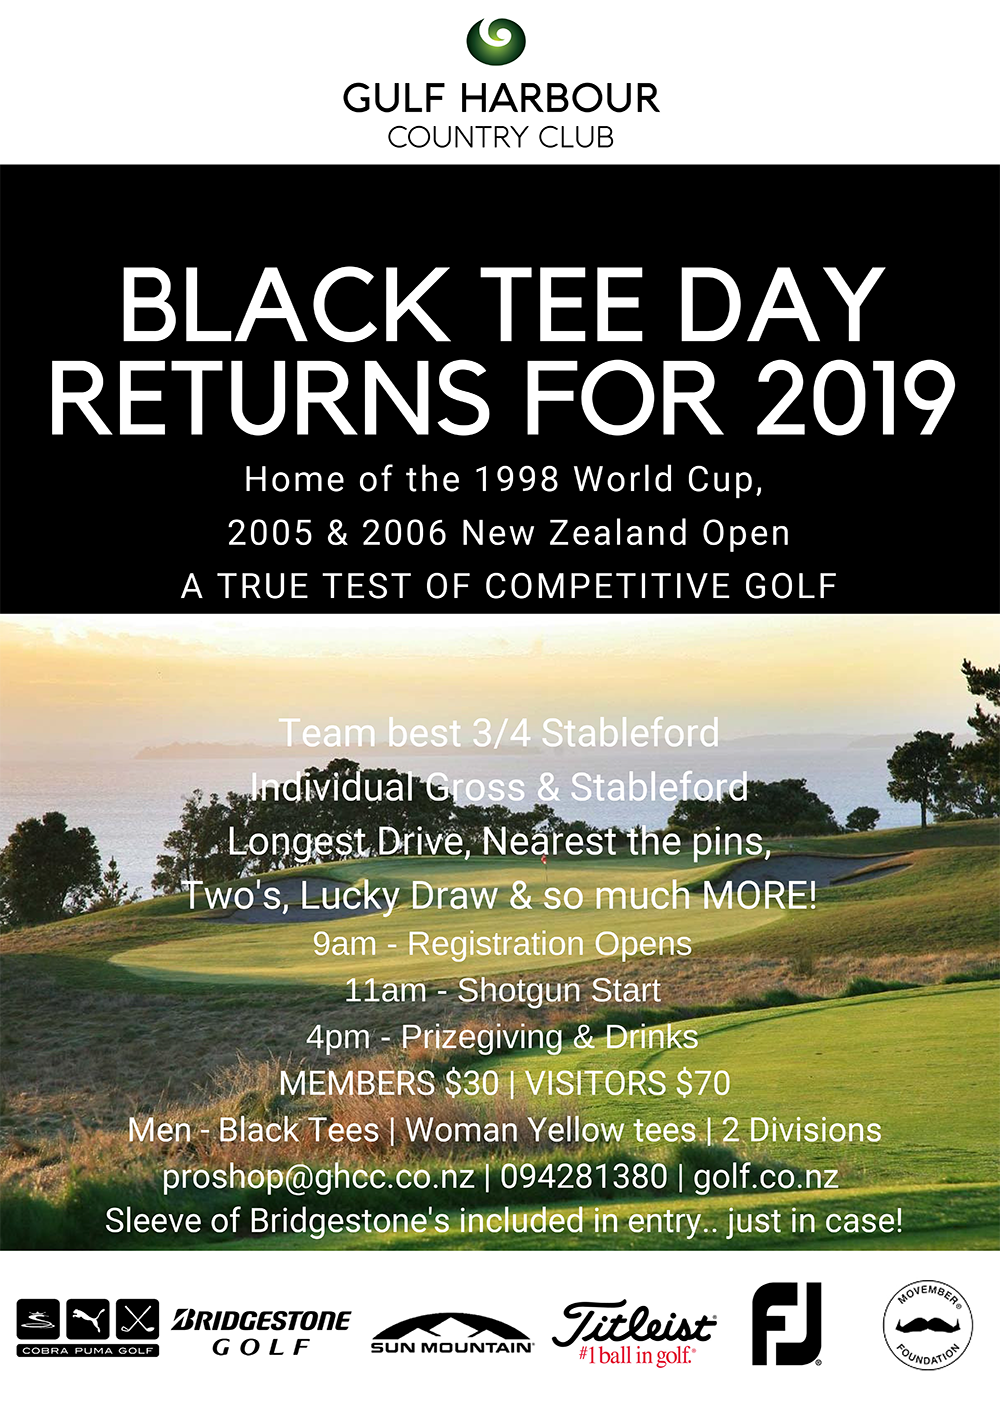 Black Tee Day 2019